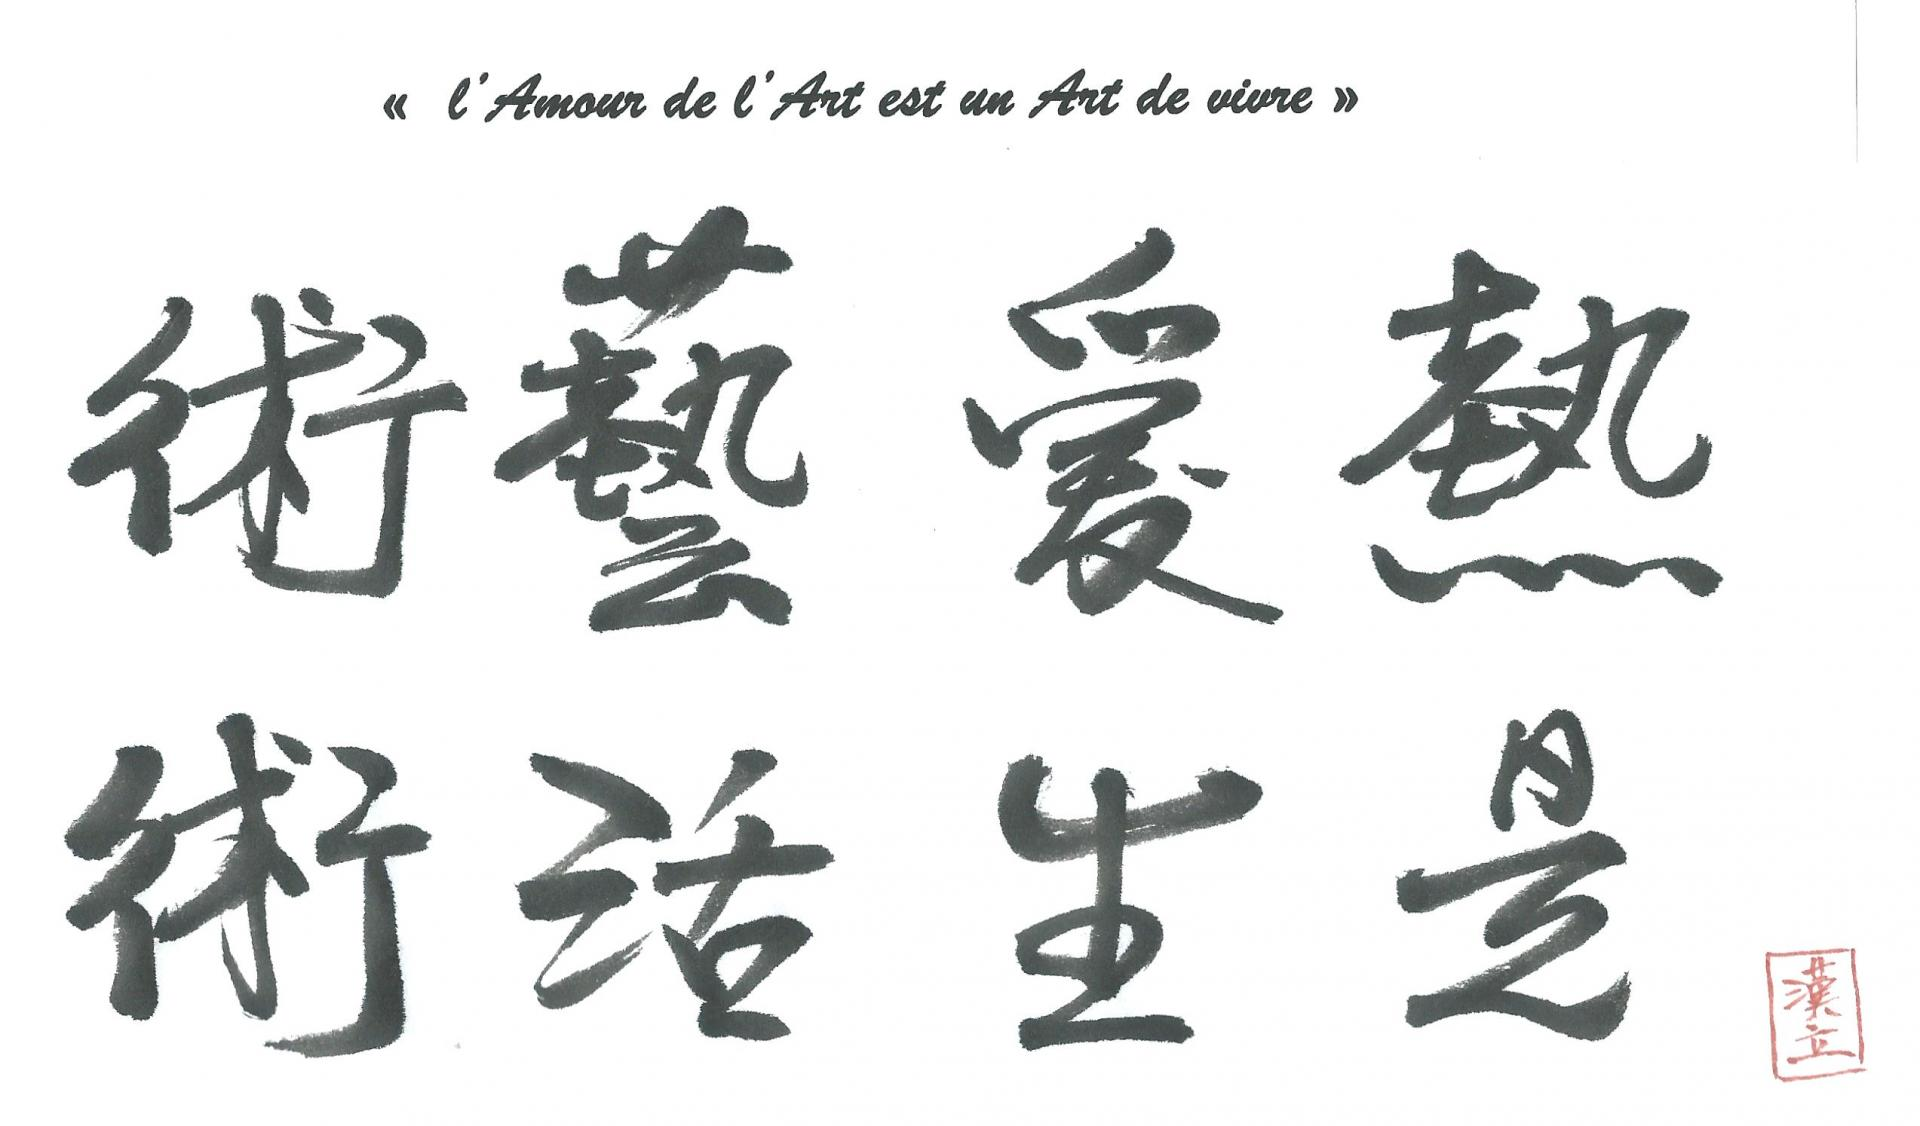 Connu Calligraphie traditionnelle asiatique (7 pages) JH92